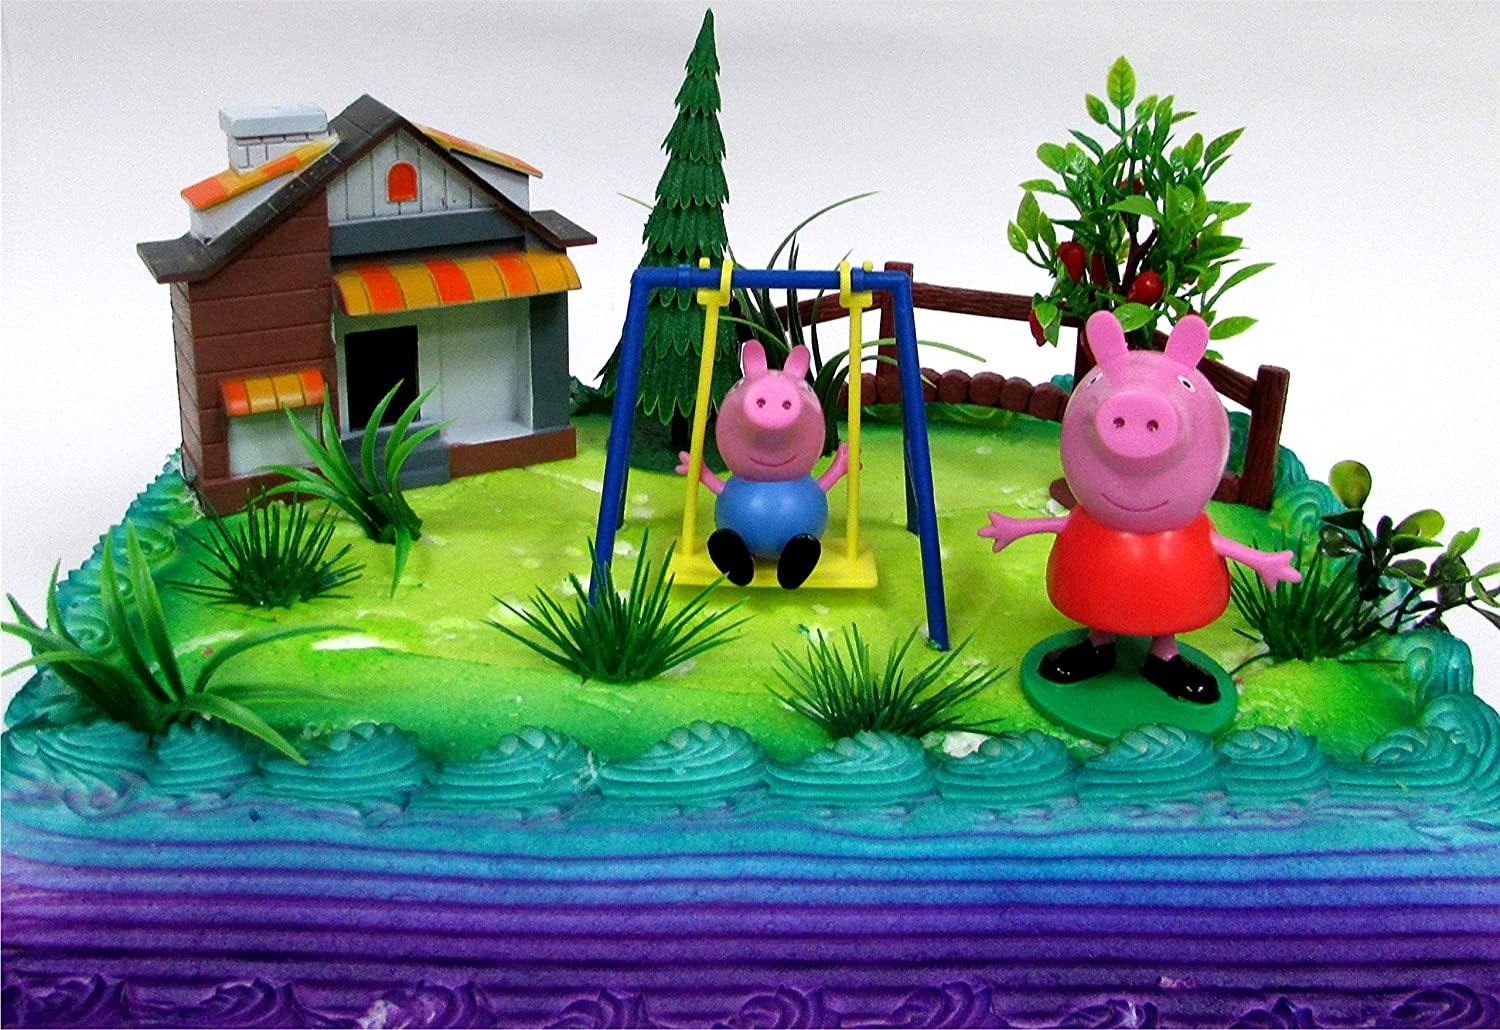 PEPPA PIG 12 Piece Birthday CAKE Topper Set, Featuring Peppa Pig and George Pig, Decorative Themed Accessories, Figures Average 3 Tall AX-AY-ABHI-114260